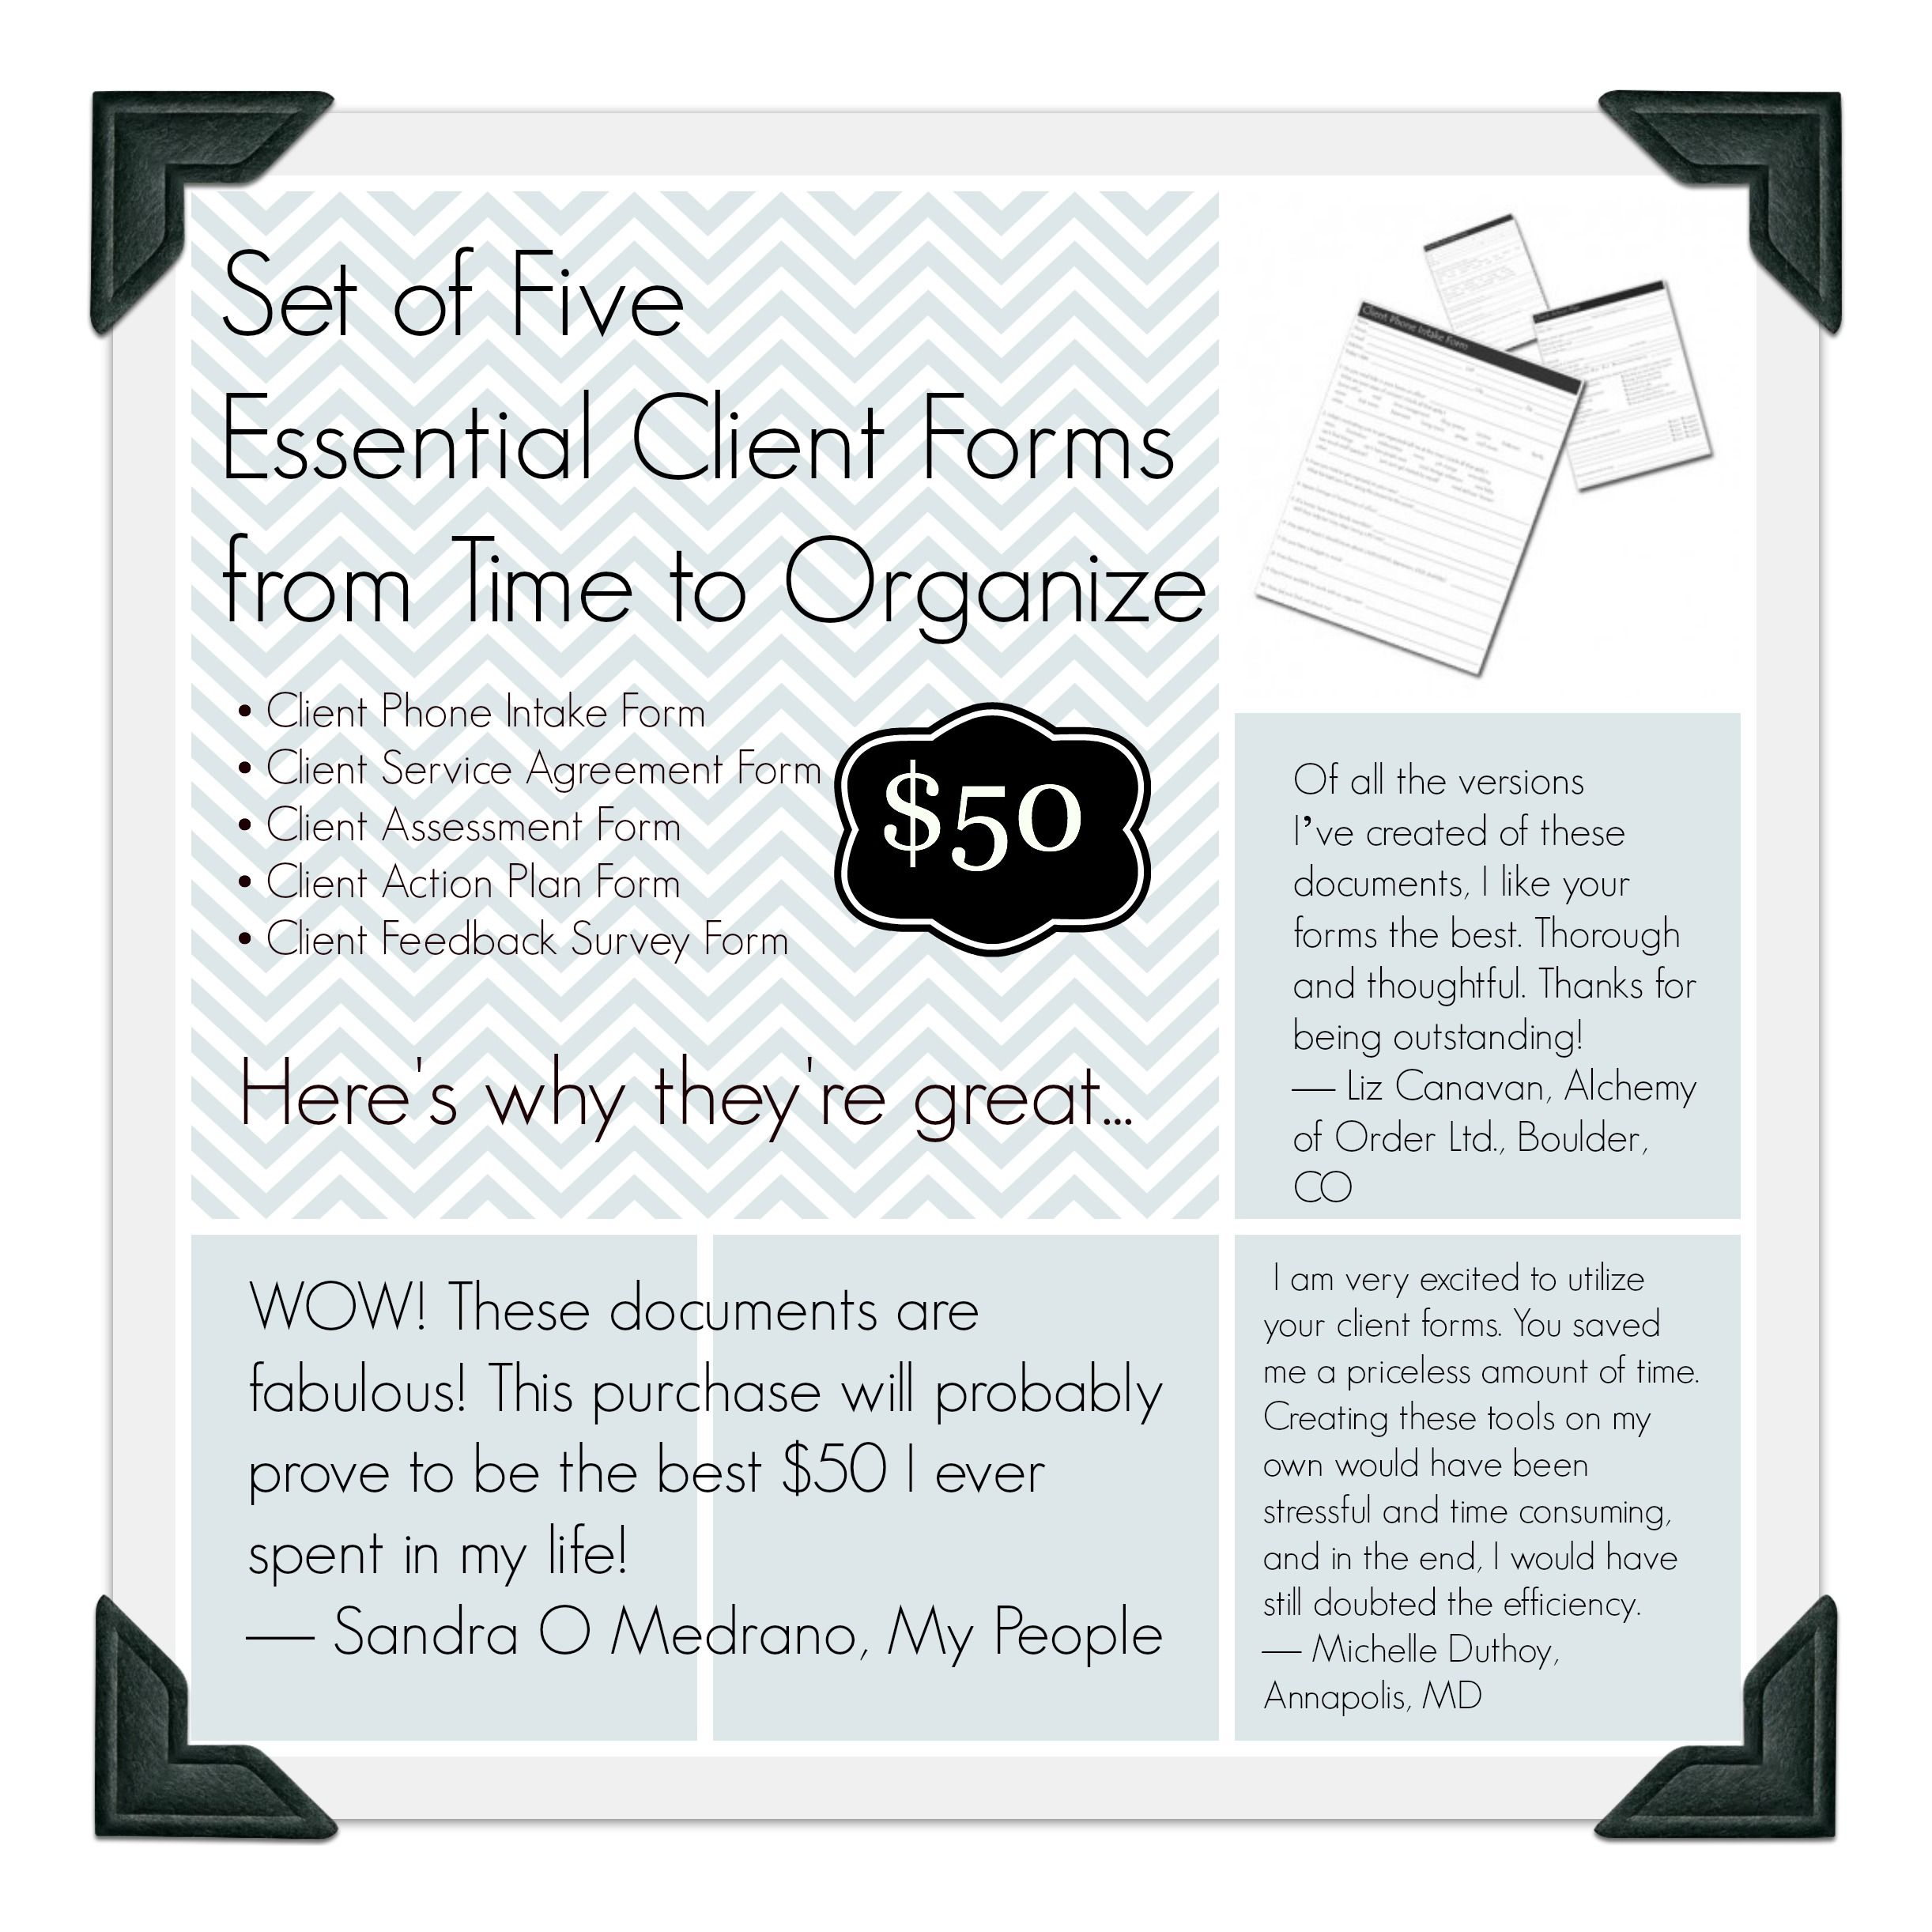 set of five essential client forms for professional organizers